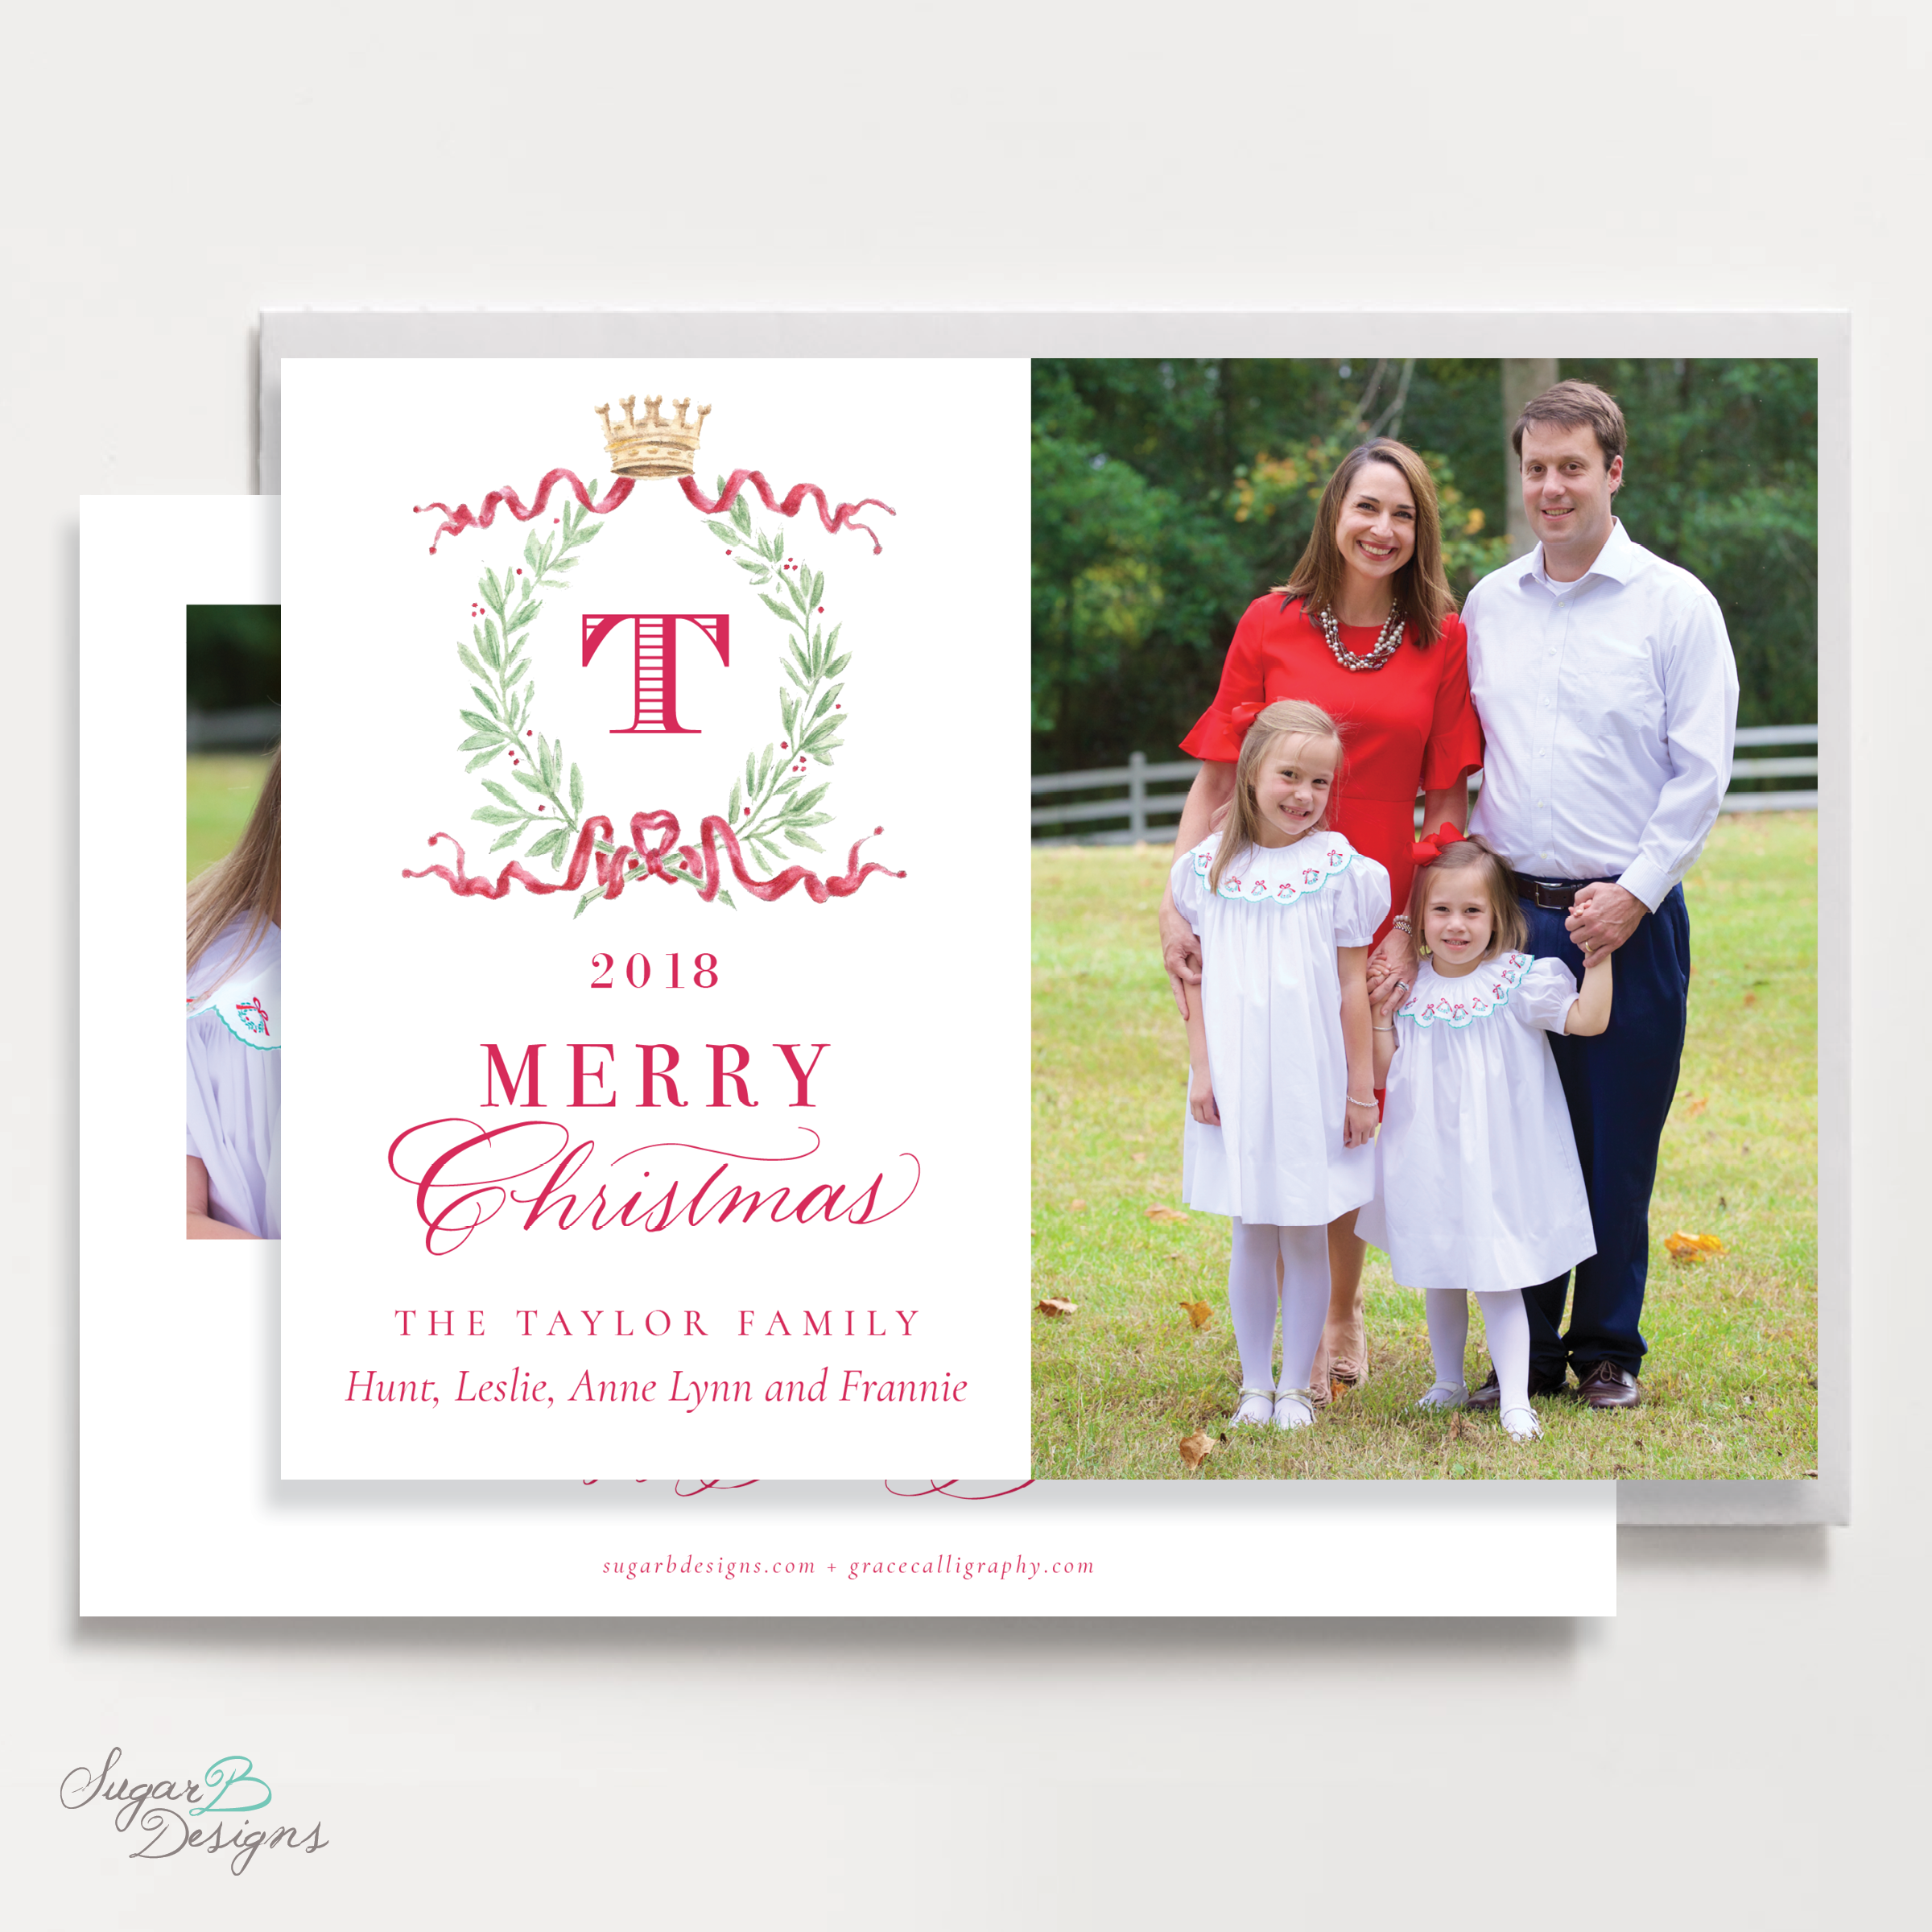 Royal Wreath Red Landscape front + back Christmas Card by Sugar B Designs.png